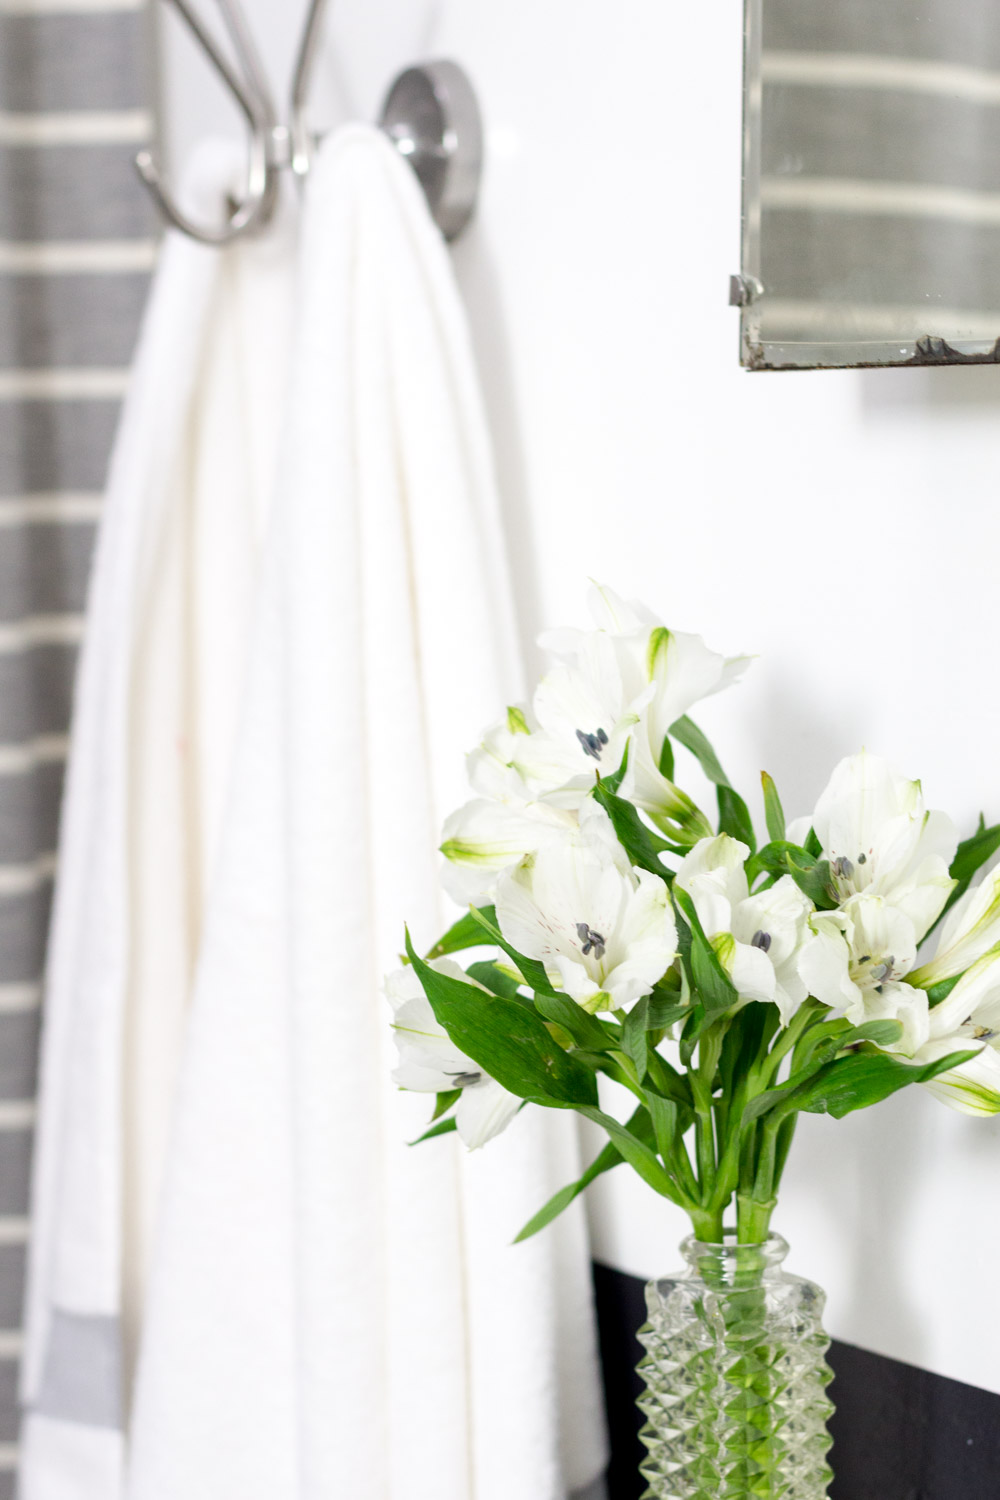 Black and white bathroom with flowers